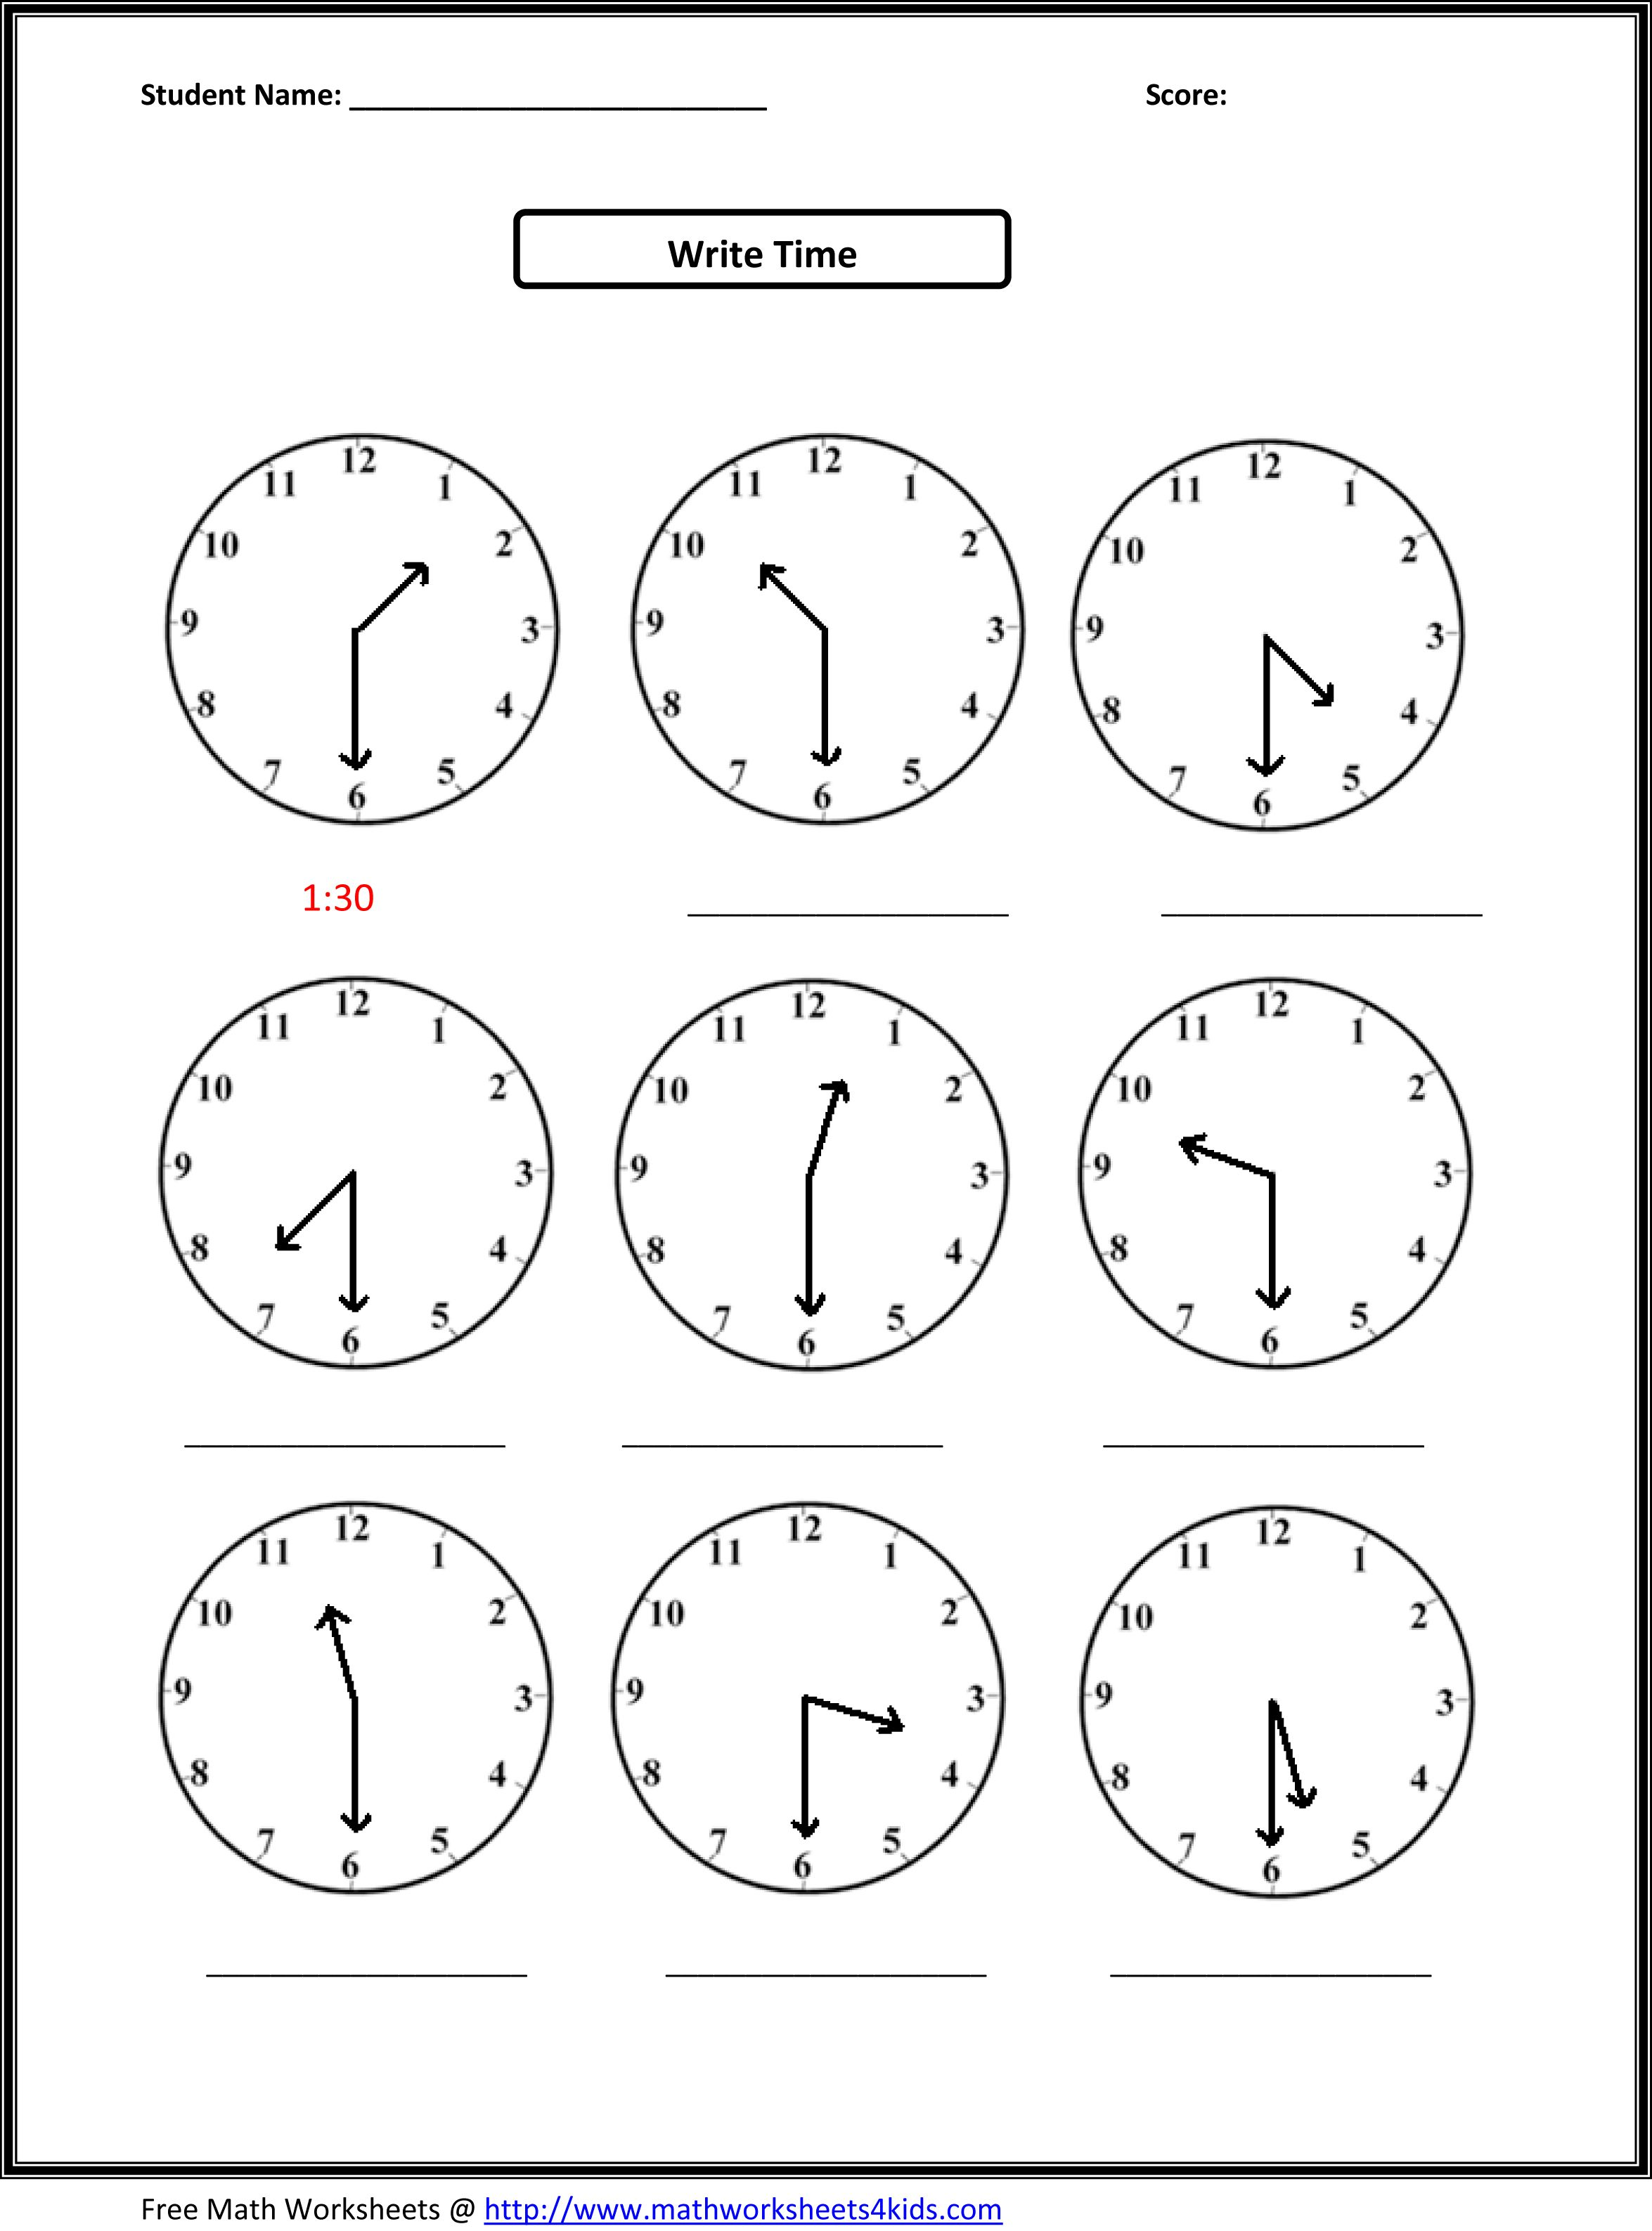 Weirdmailus  Pleasant Worksheet On Time For Grade   Reocurent With Lovely Free Printable Telling Time Worksheets Nd Grade  Reocurent With Cute  X  Digit Multiplication Worksheet Also English Grammar Worksheets For Grade  In Addition Sudoku Worksheets With Answers And Multiplication Worksheets  As Well As Addition Integers Worksheet Additionally All Times Tables Worksheet From Reocurentcom With Weirdmailus  Lovely Worksheet On Time For Grade   Reocurent With Cute Free Printable Telling Time Worksheets Nd Grade  Reocurent And Pleasant  X  Digit Multiplication Worksheet Also English Grammar Worksheets For Grade  In Addition Sudoku Worksheets With Answers From Reocurentcom